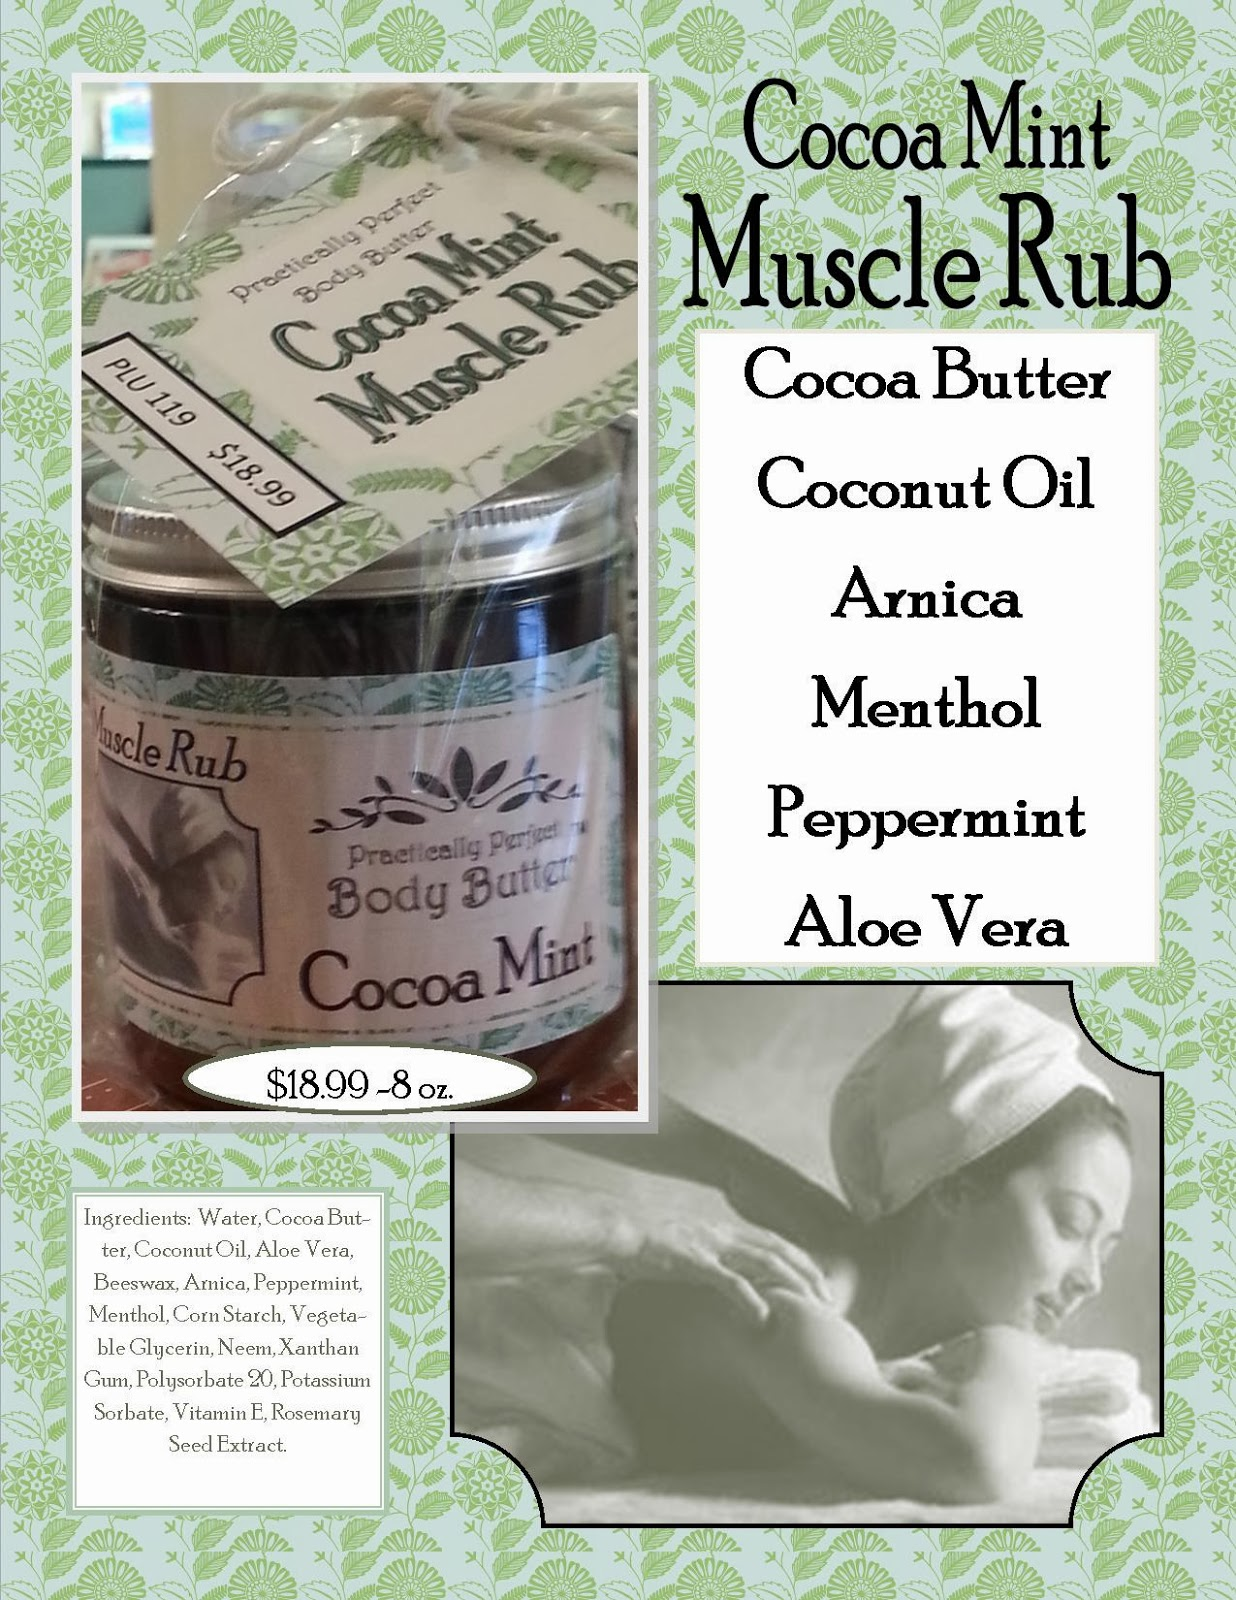 Cocoa Mint Muscle Rub